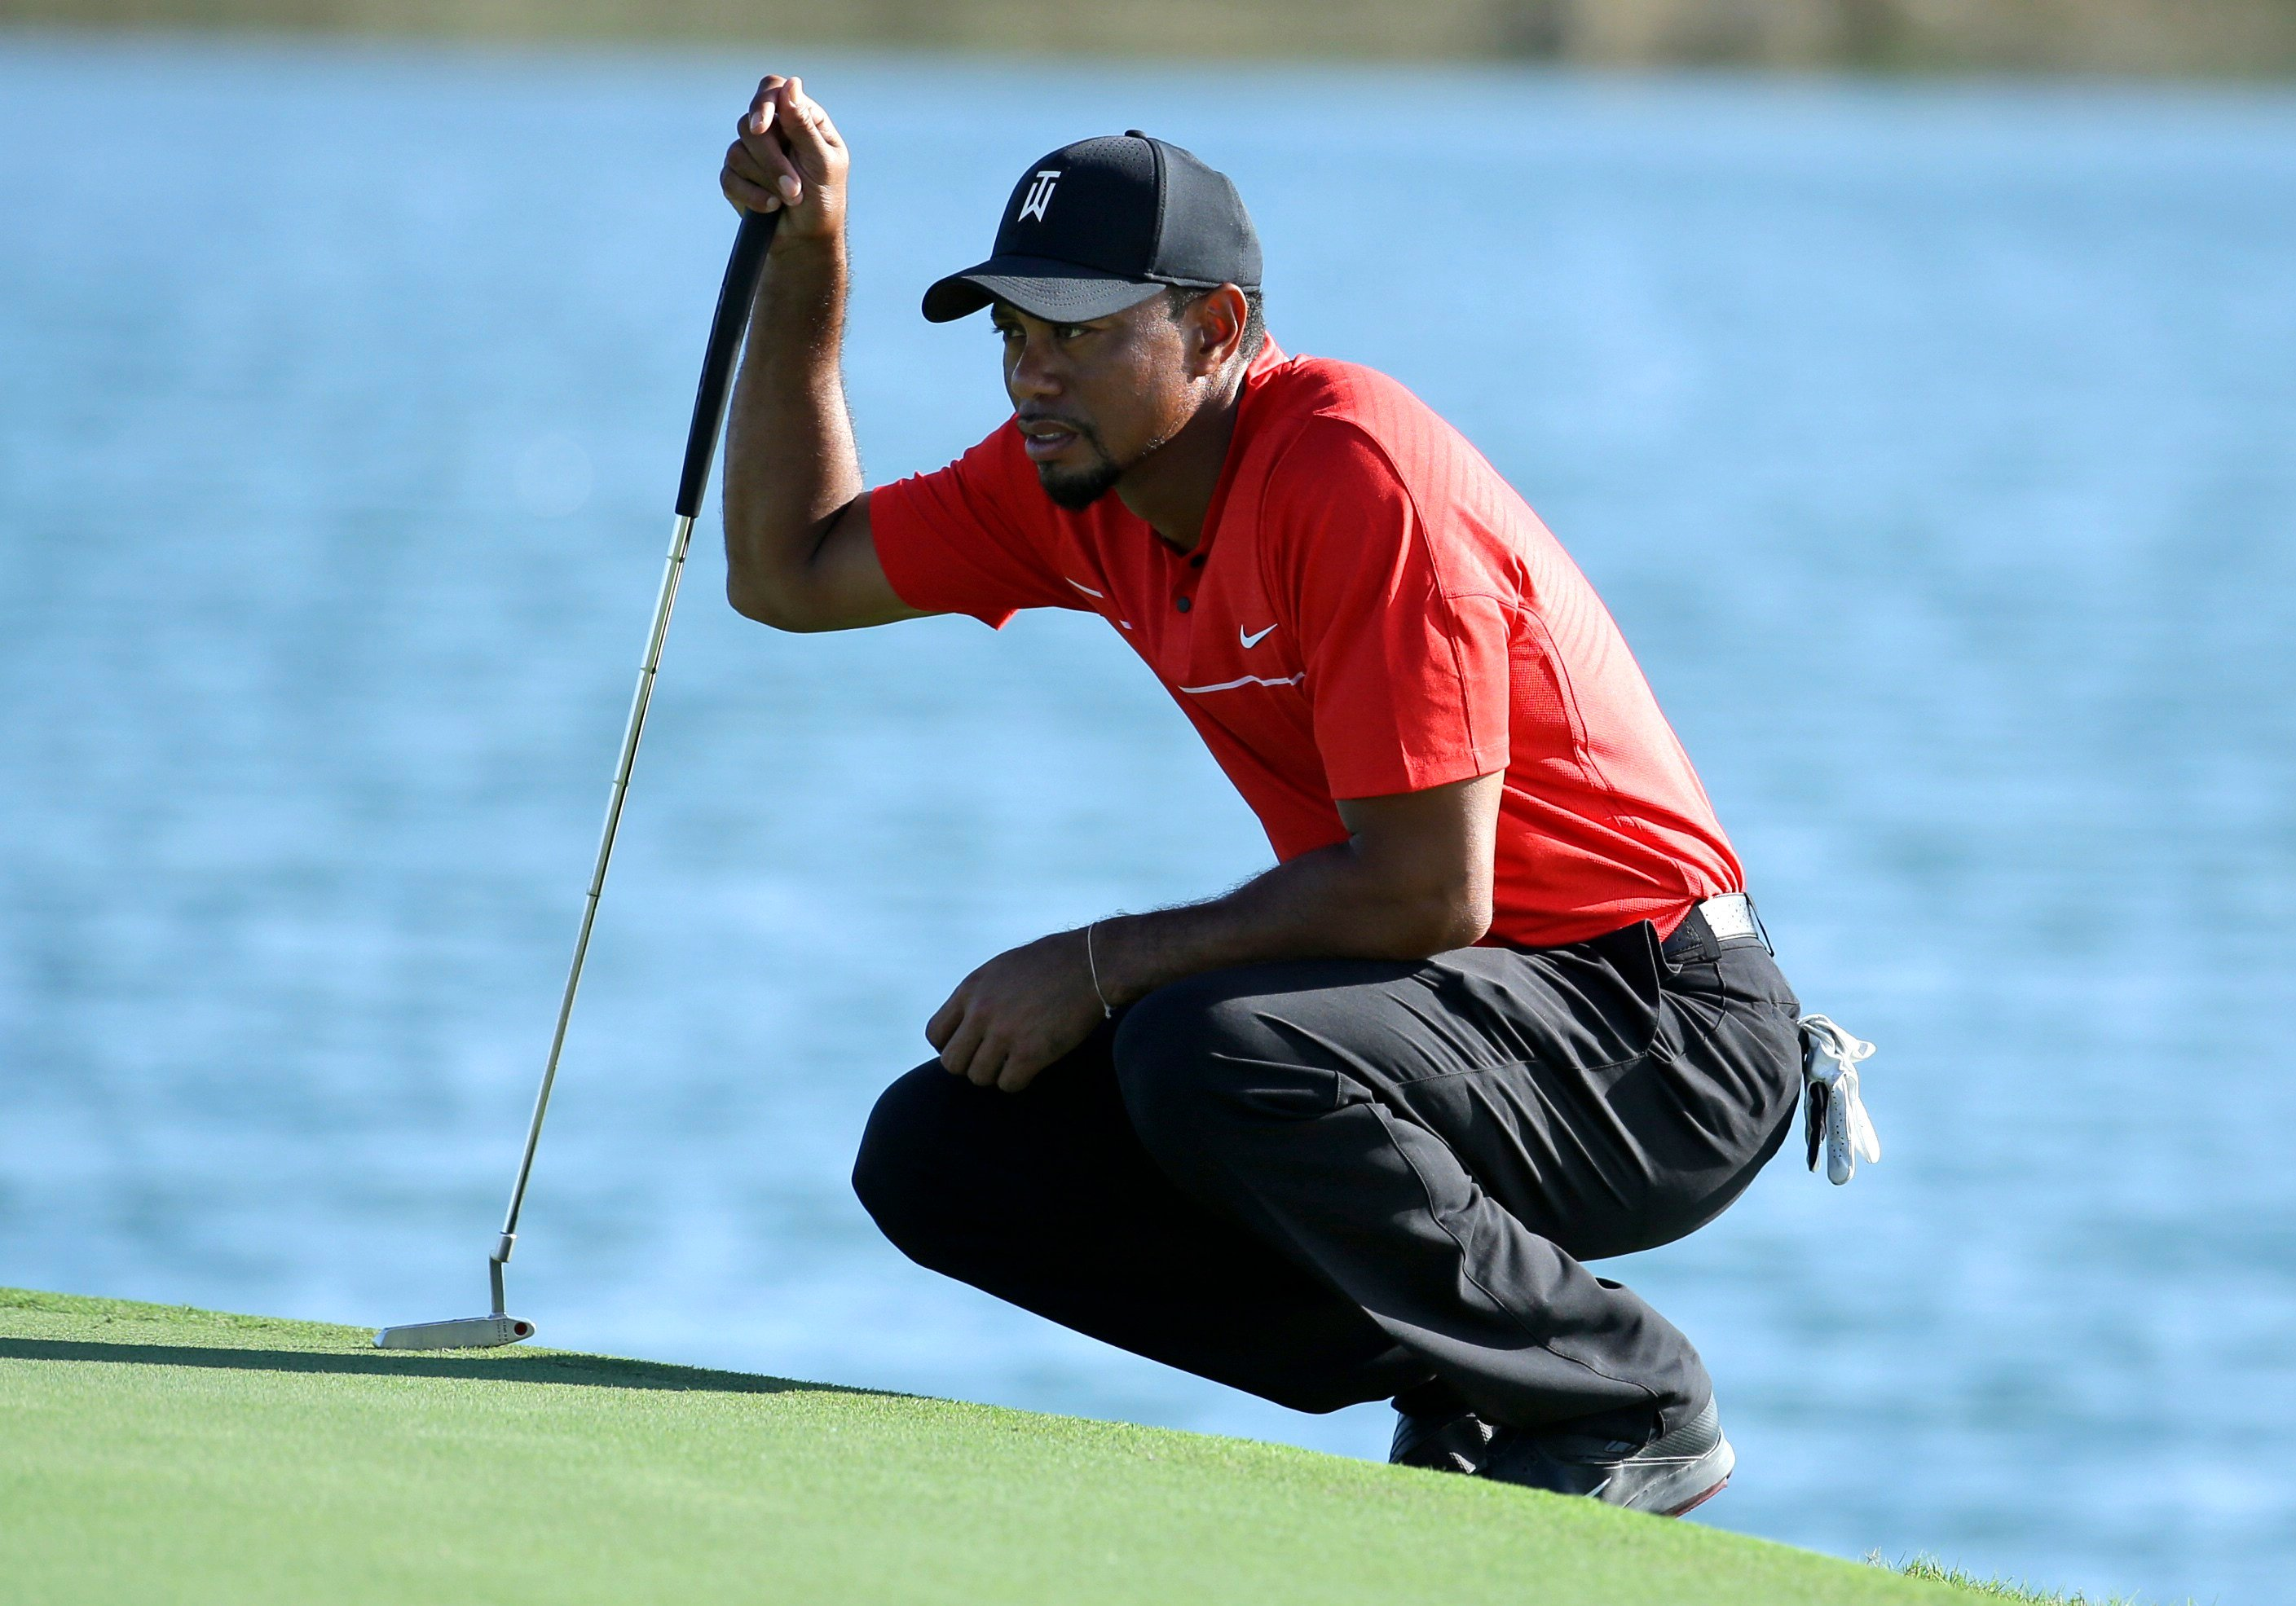 FILE - In this Dec. 4, 2016, file photo, Tiger Woods lines up a putt on the 17th hole during the final round of the Hero World Challenge golf tournament in Nassau, Bahamas.  (AP Photo/Lynne Sladky, File)